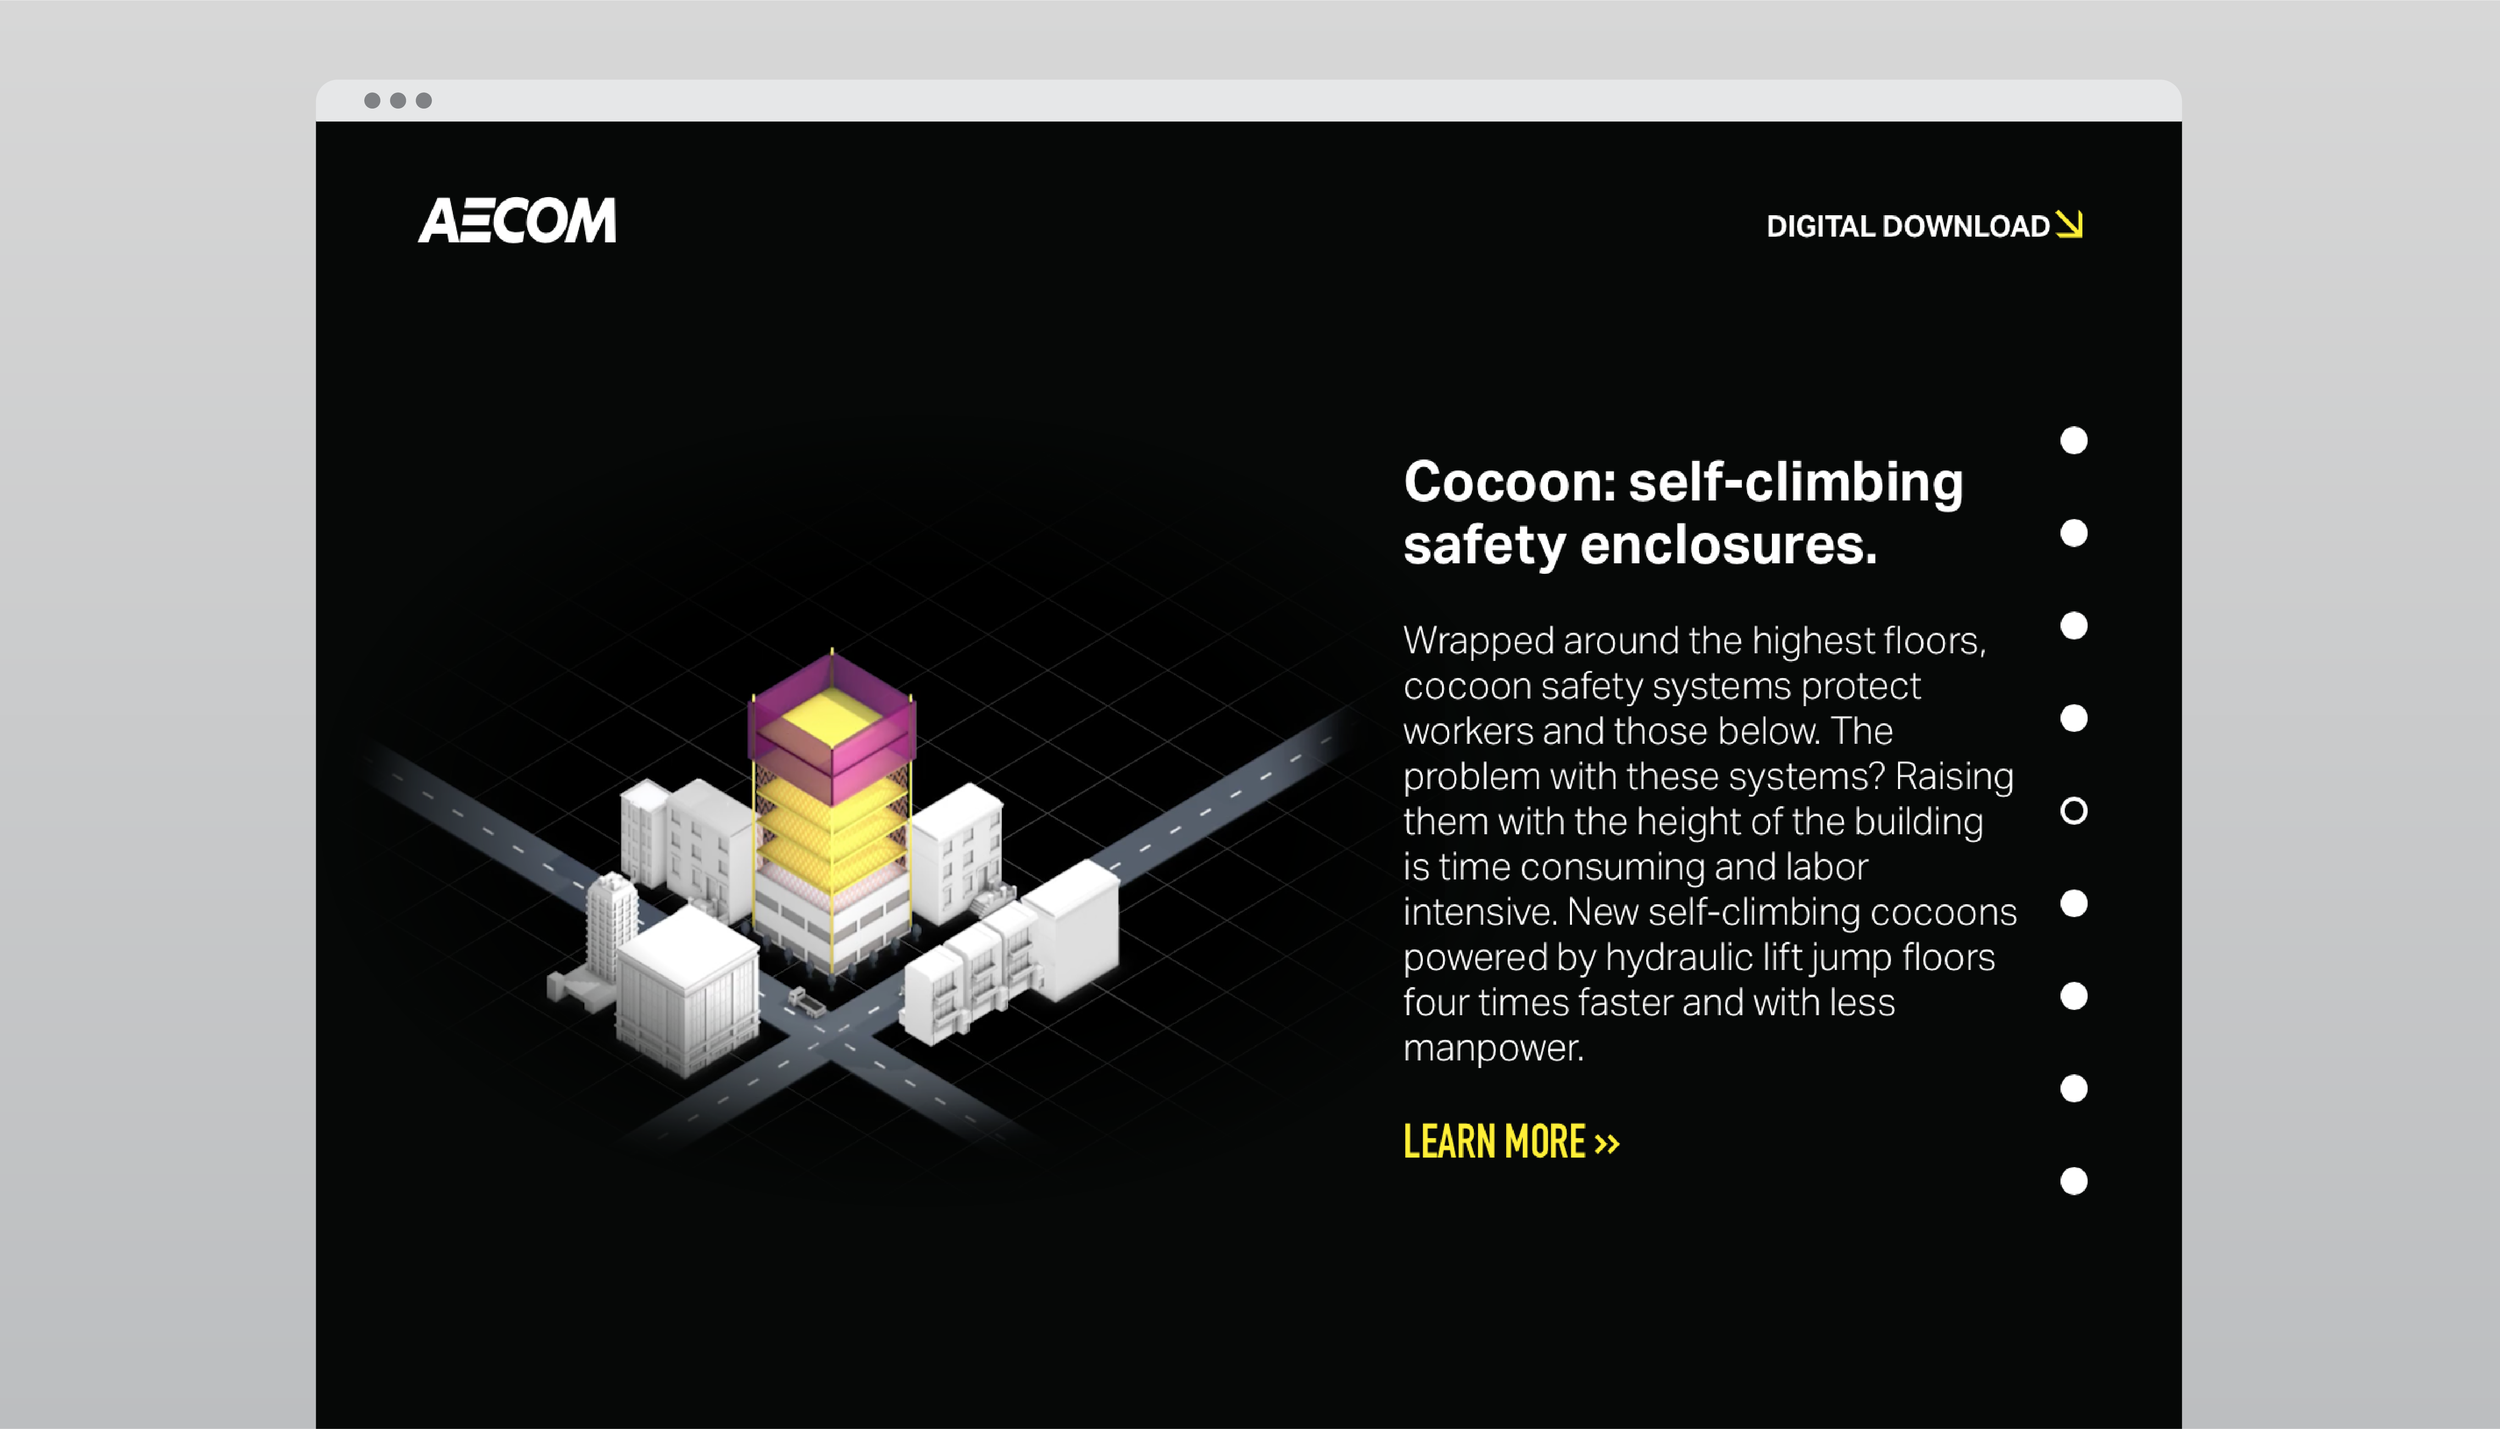 Animation: Self-climbing safety cocoon